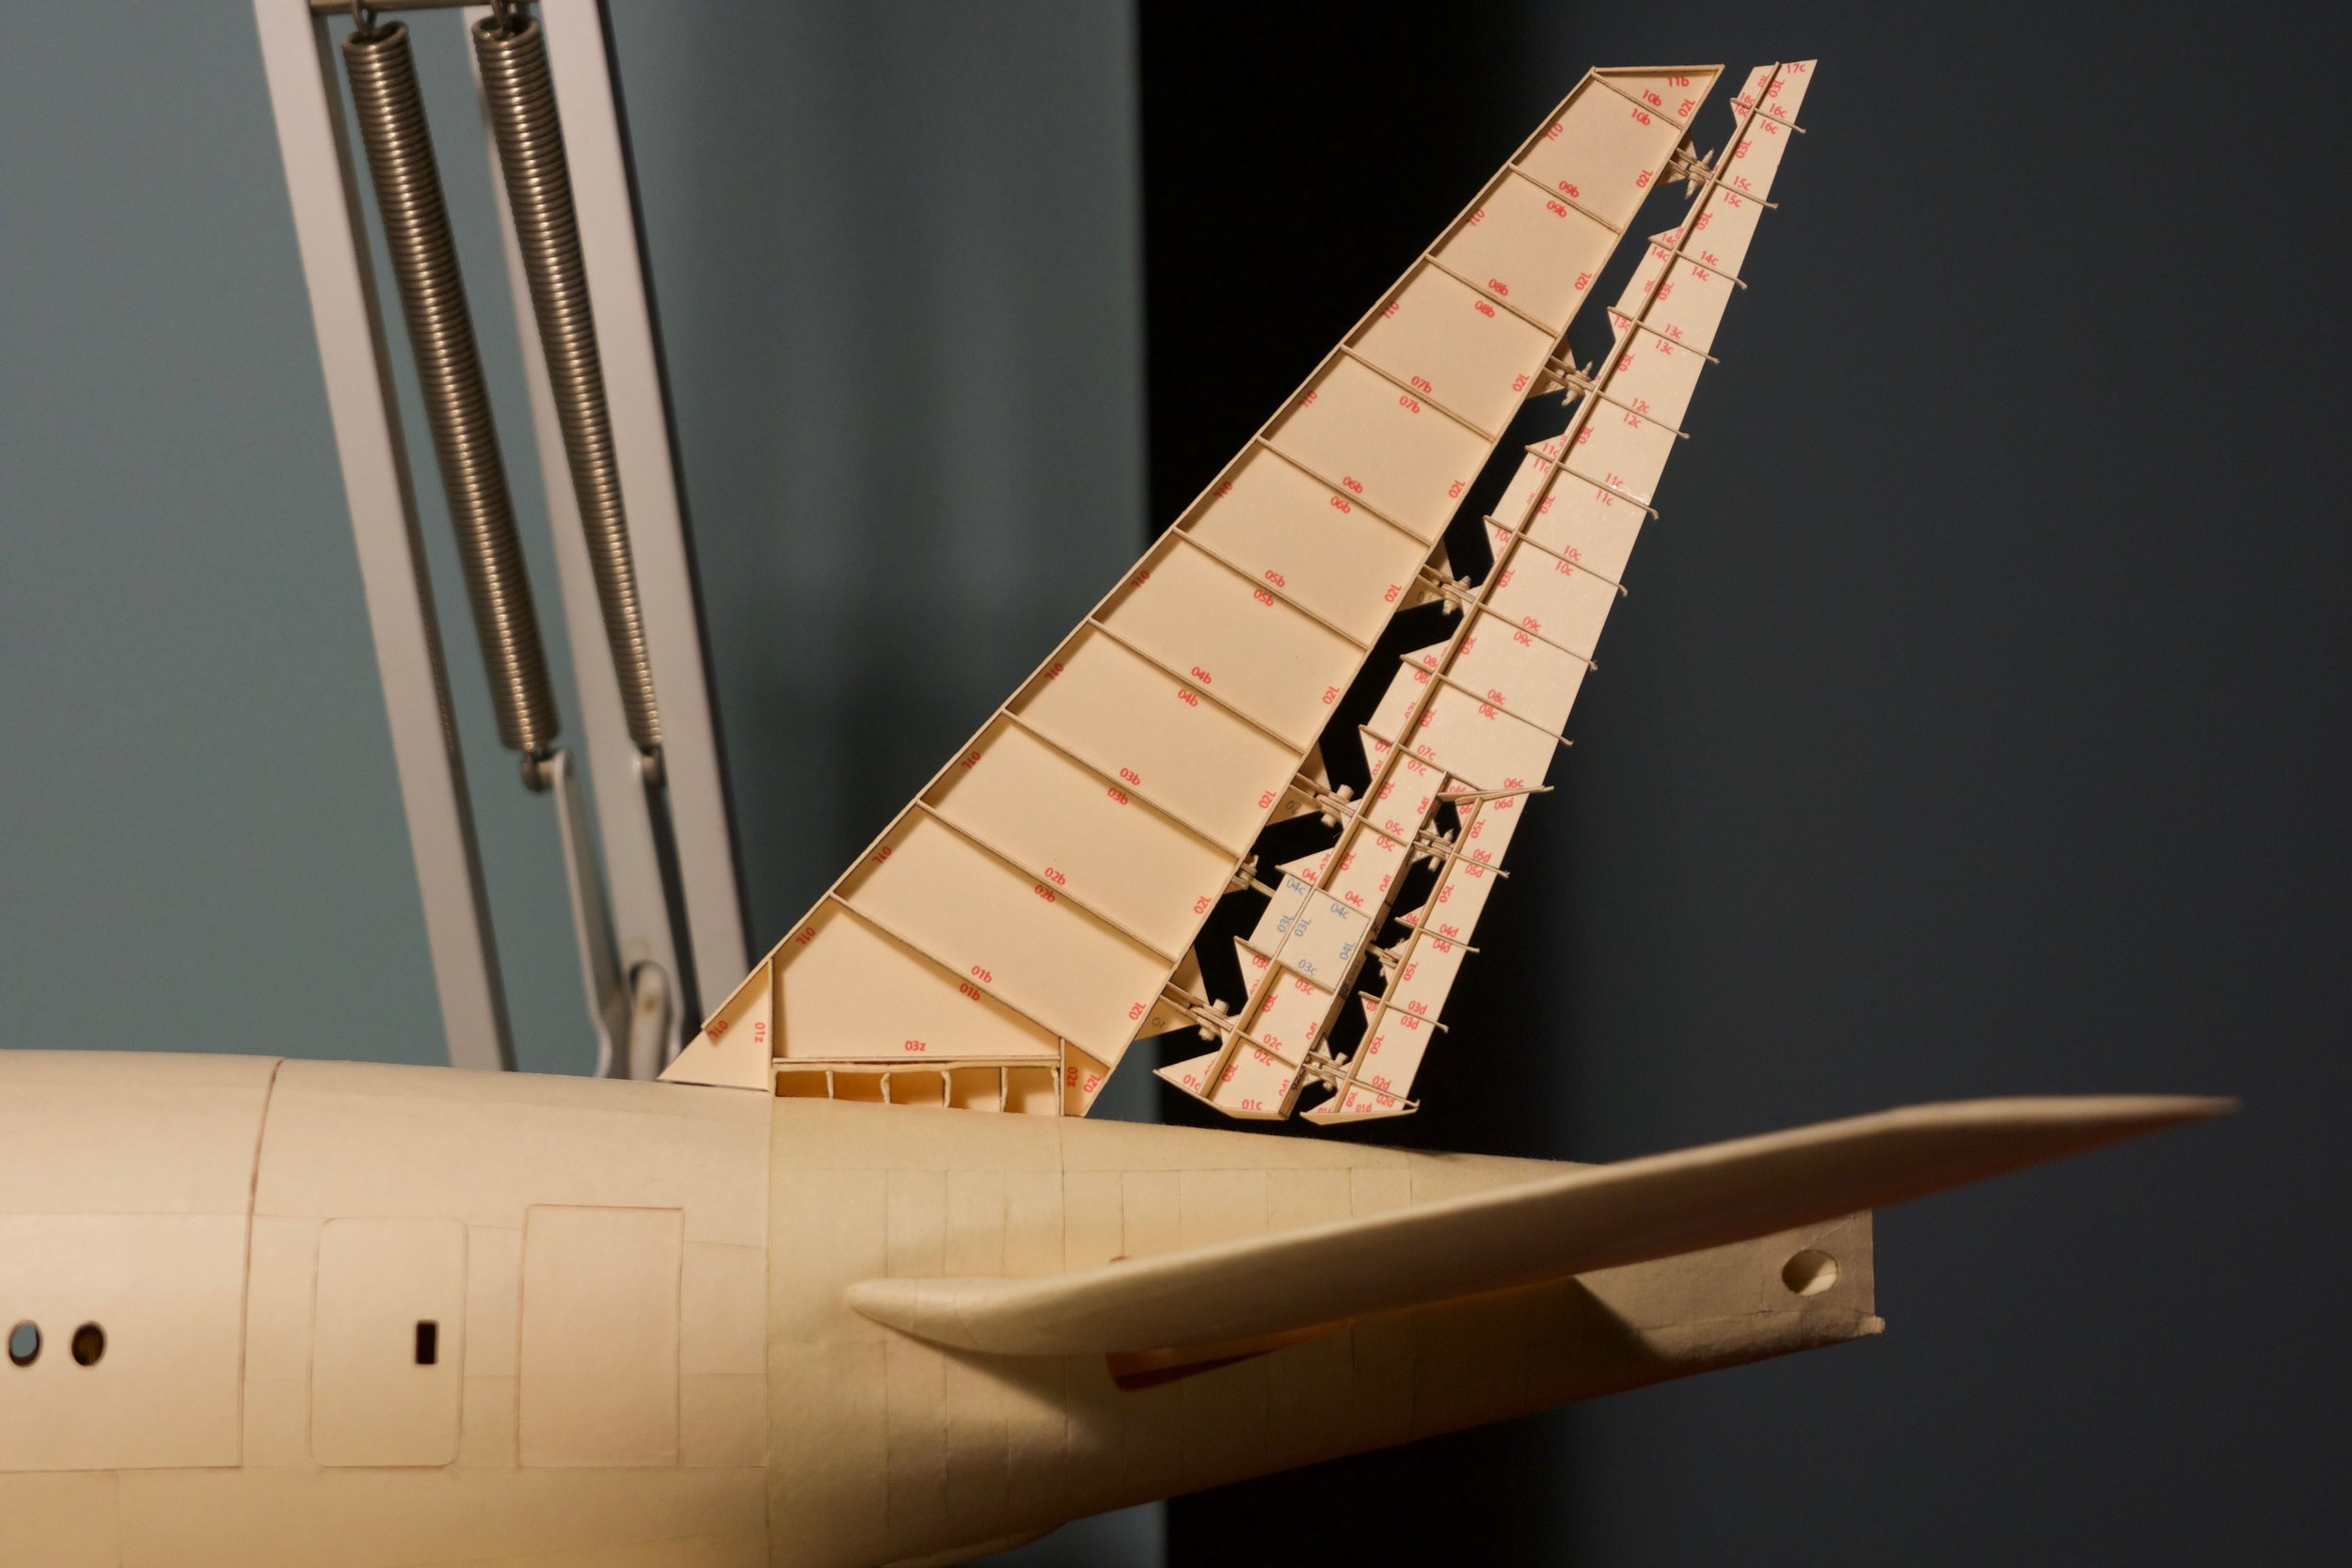 The new tail fin/horizontal stabilizer, showing its interior structure